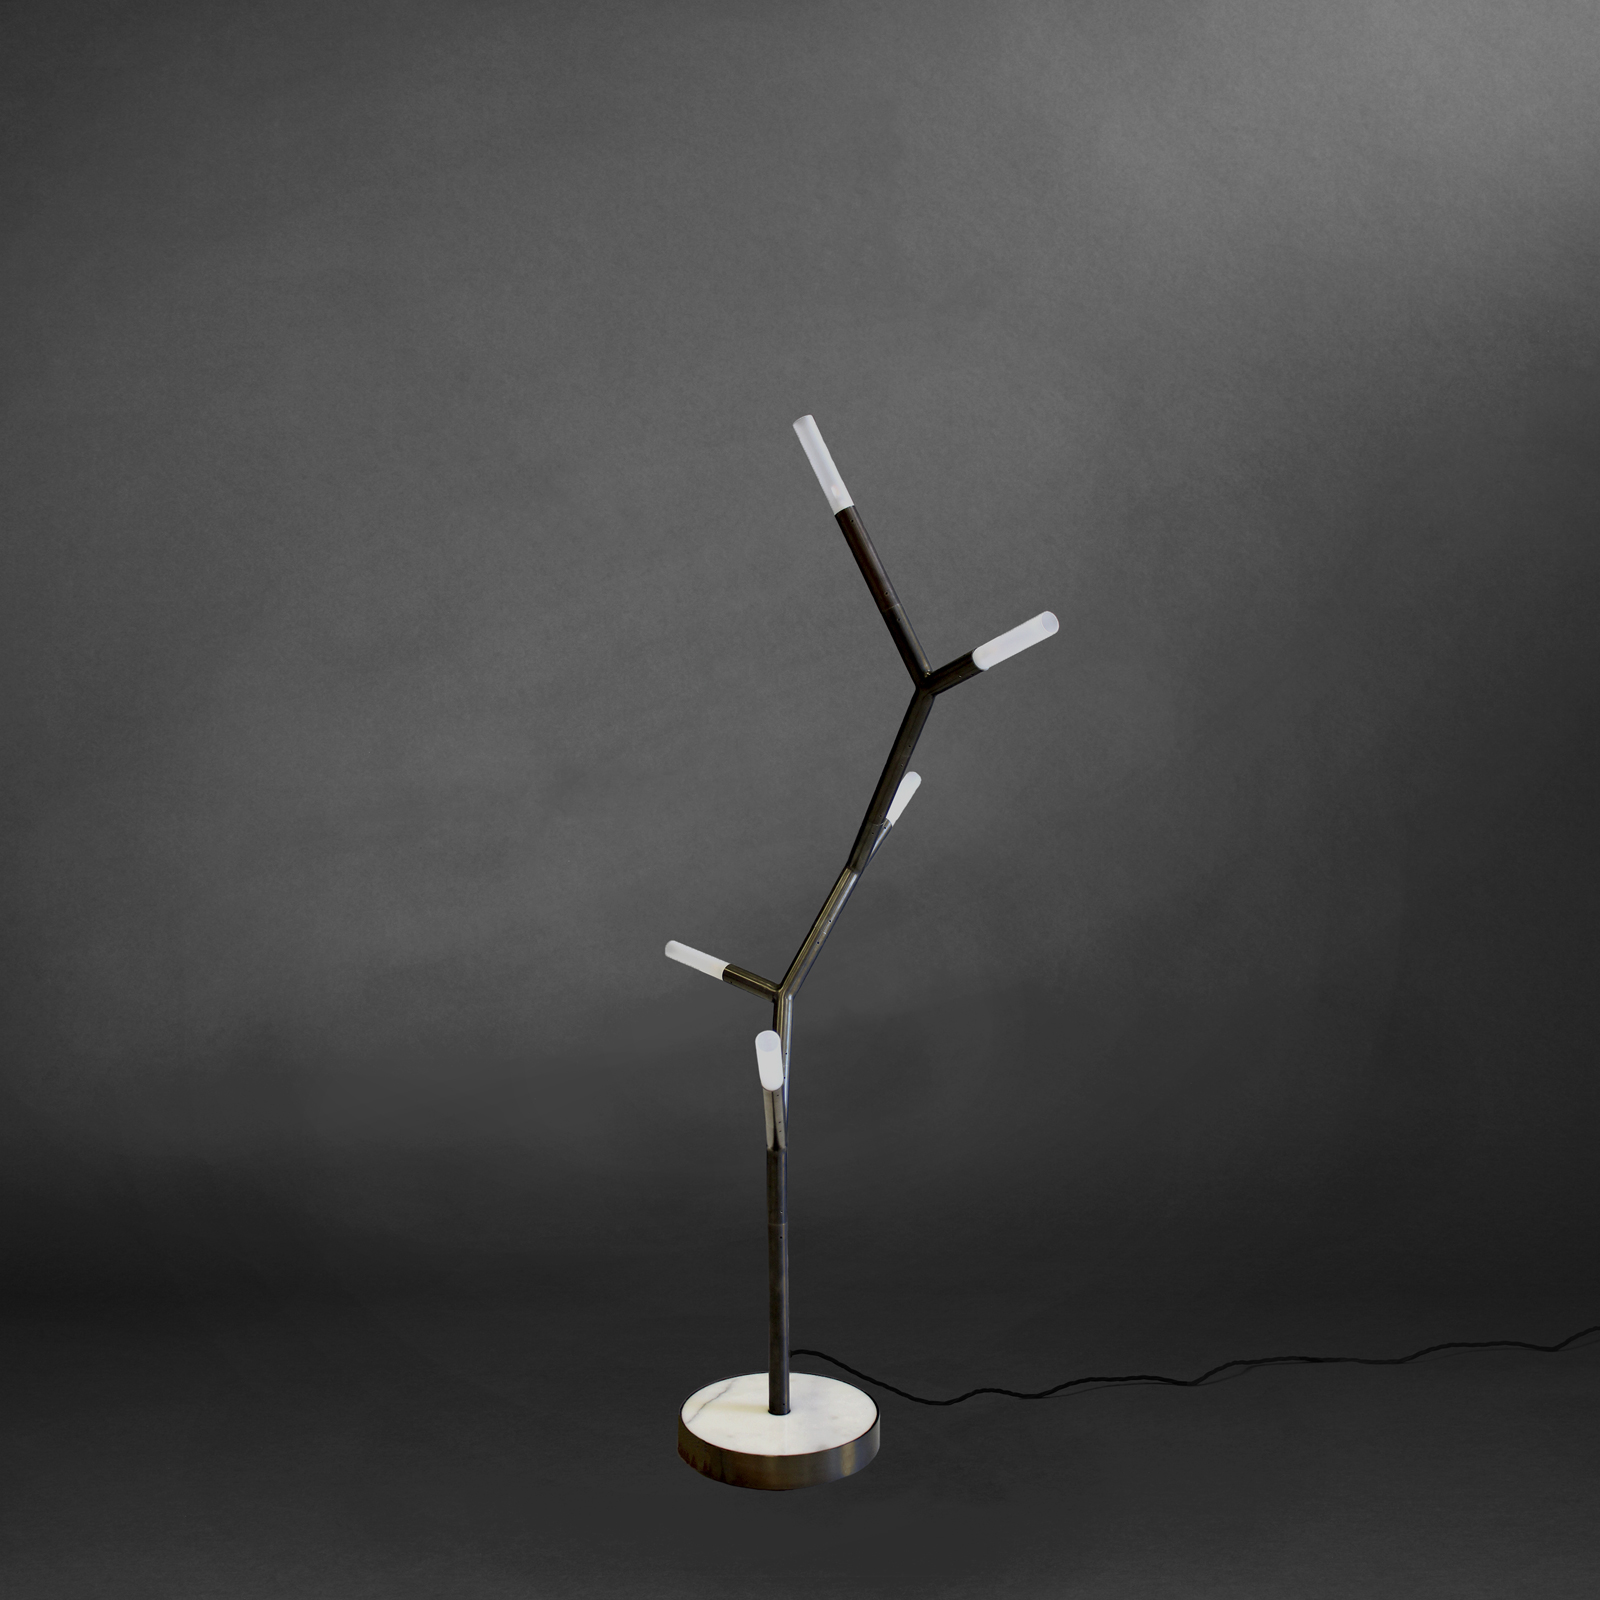 5 Arm Branch Chain Amino Acid Floor Lamp By Christopher Boots In Brushed Brass And Marble 2018 Australia 01